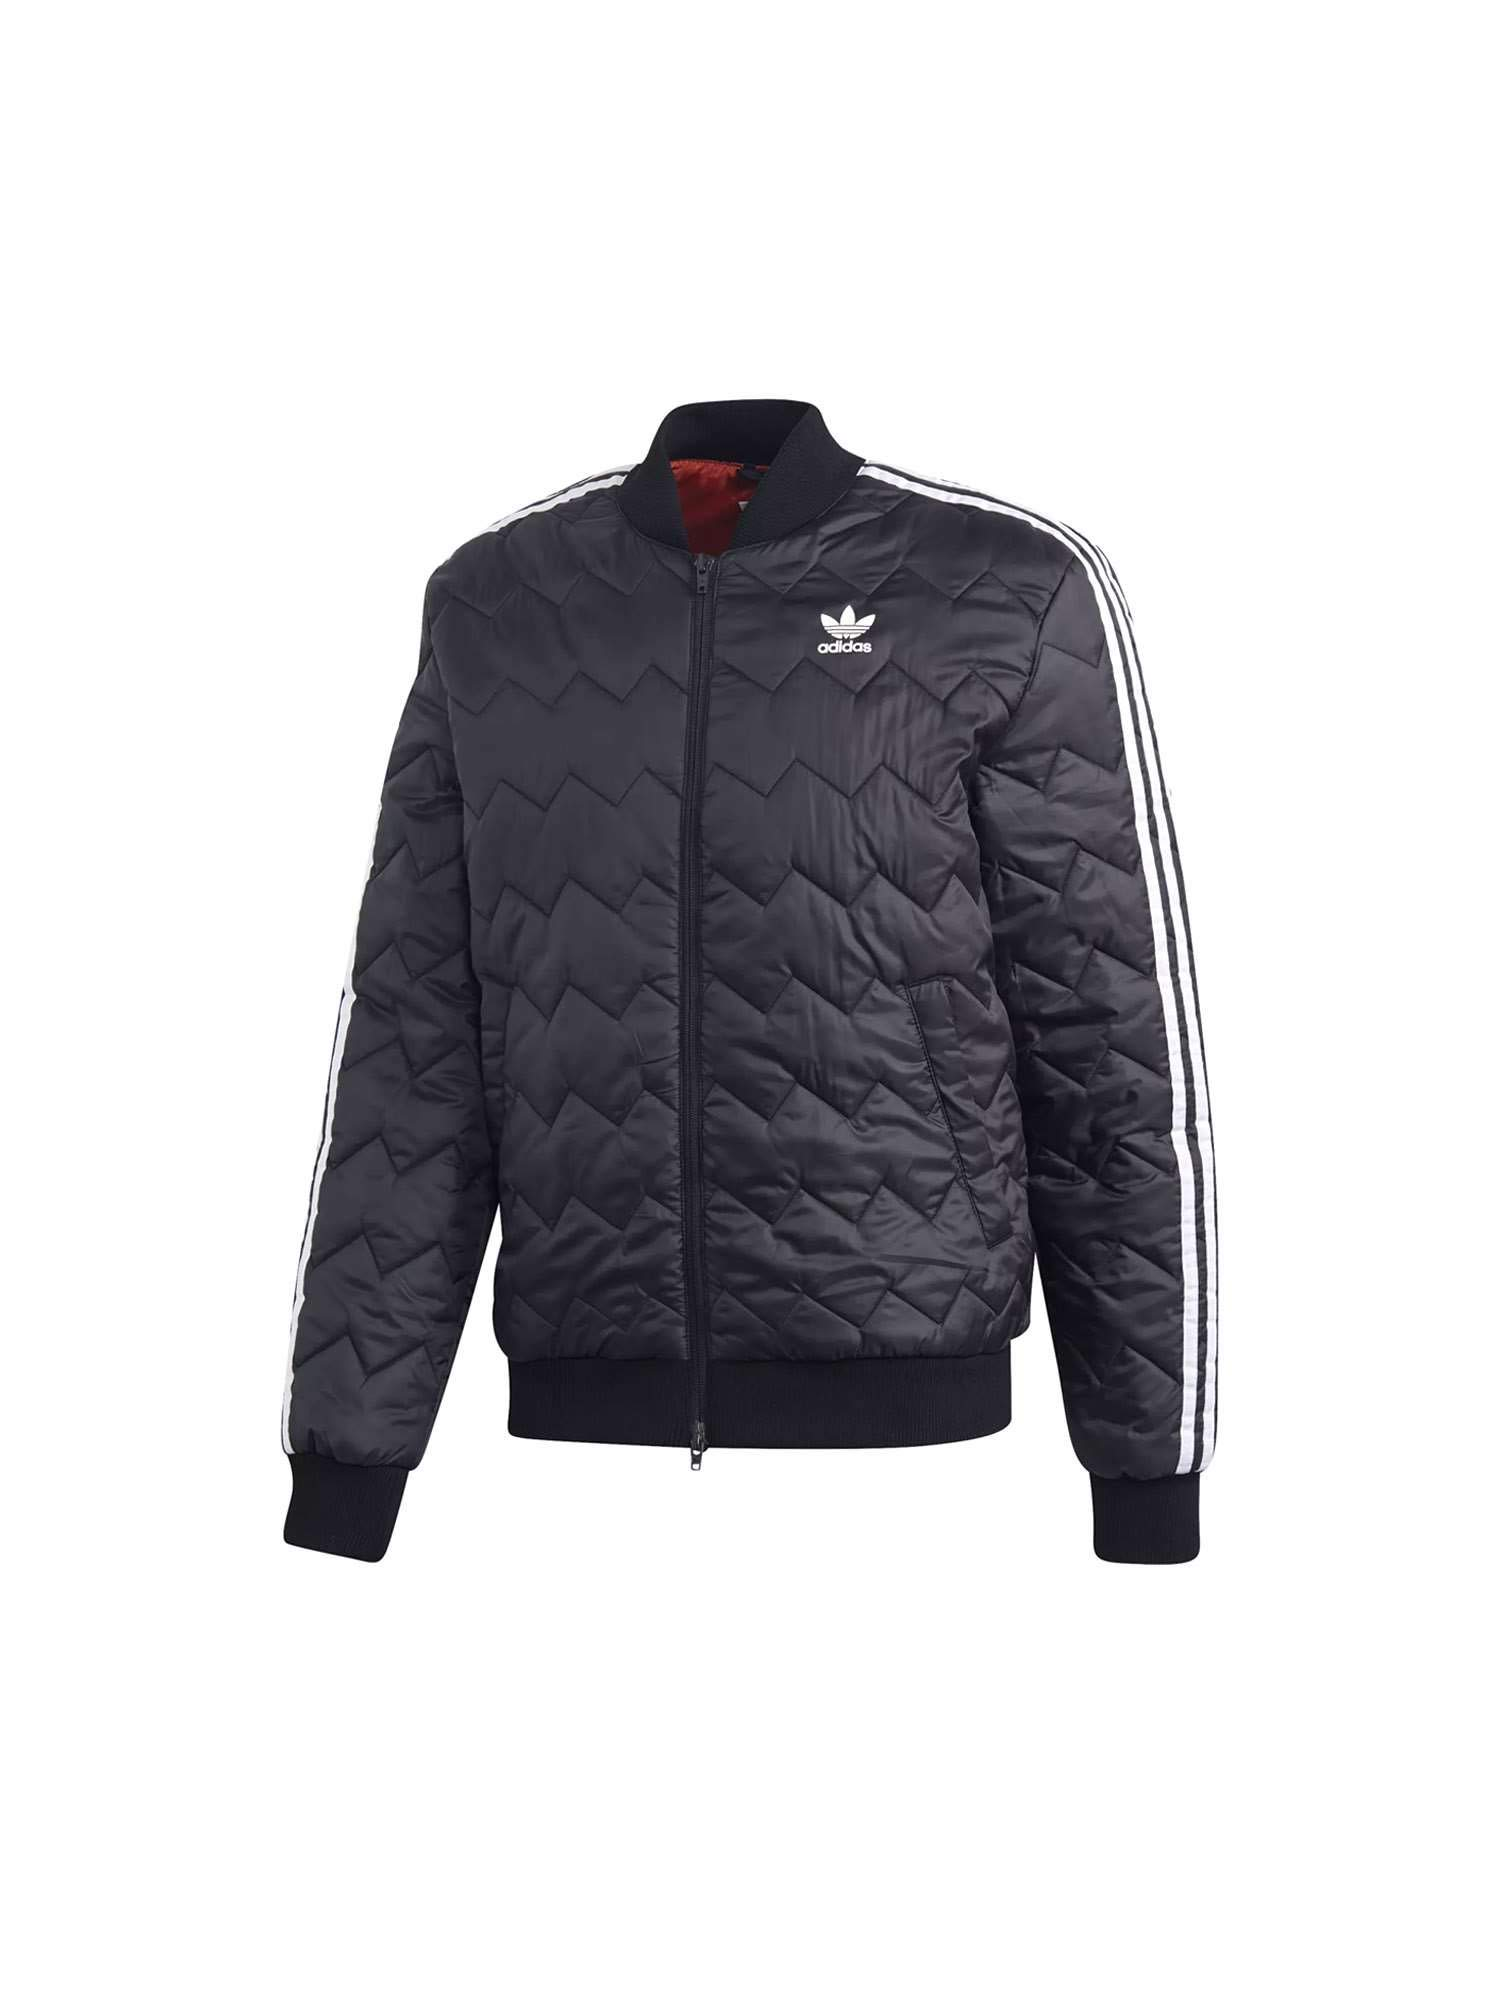 premium selection 3aa2a 31e0a adidas SST Quilted, Giacca Sportiva Uomo - FACESHOPPING